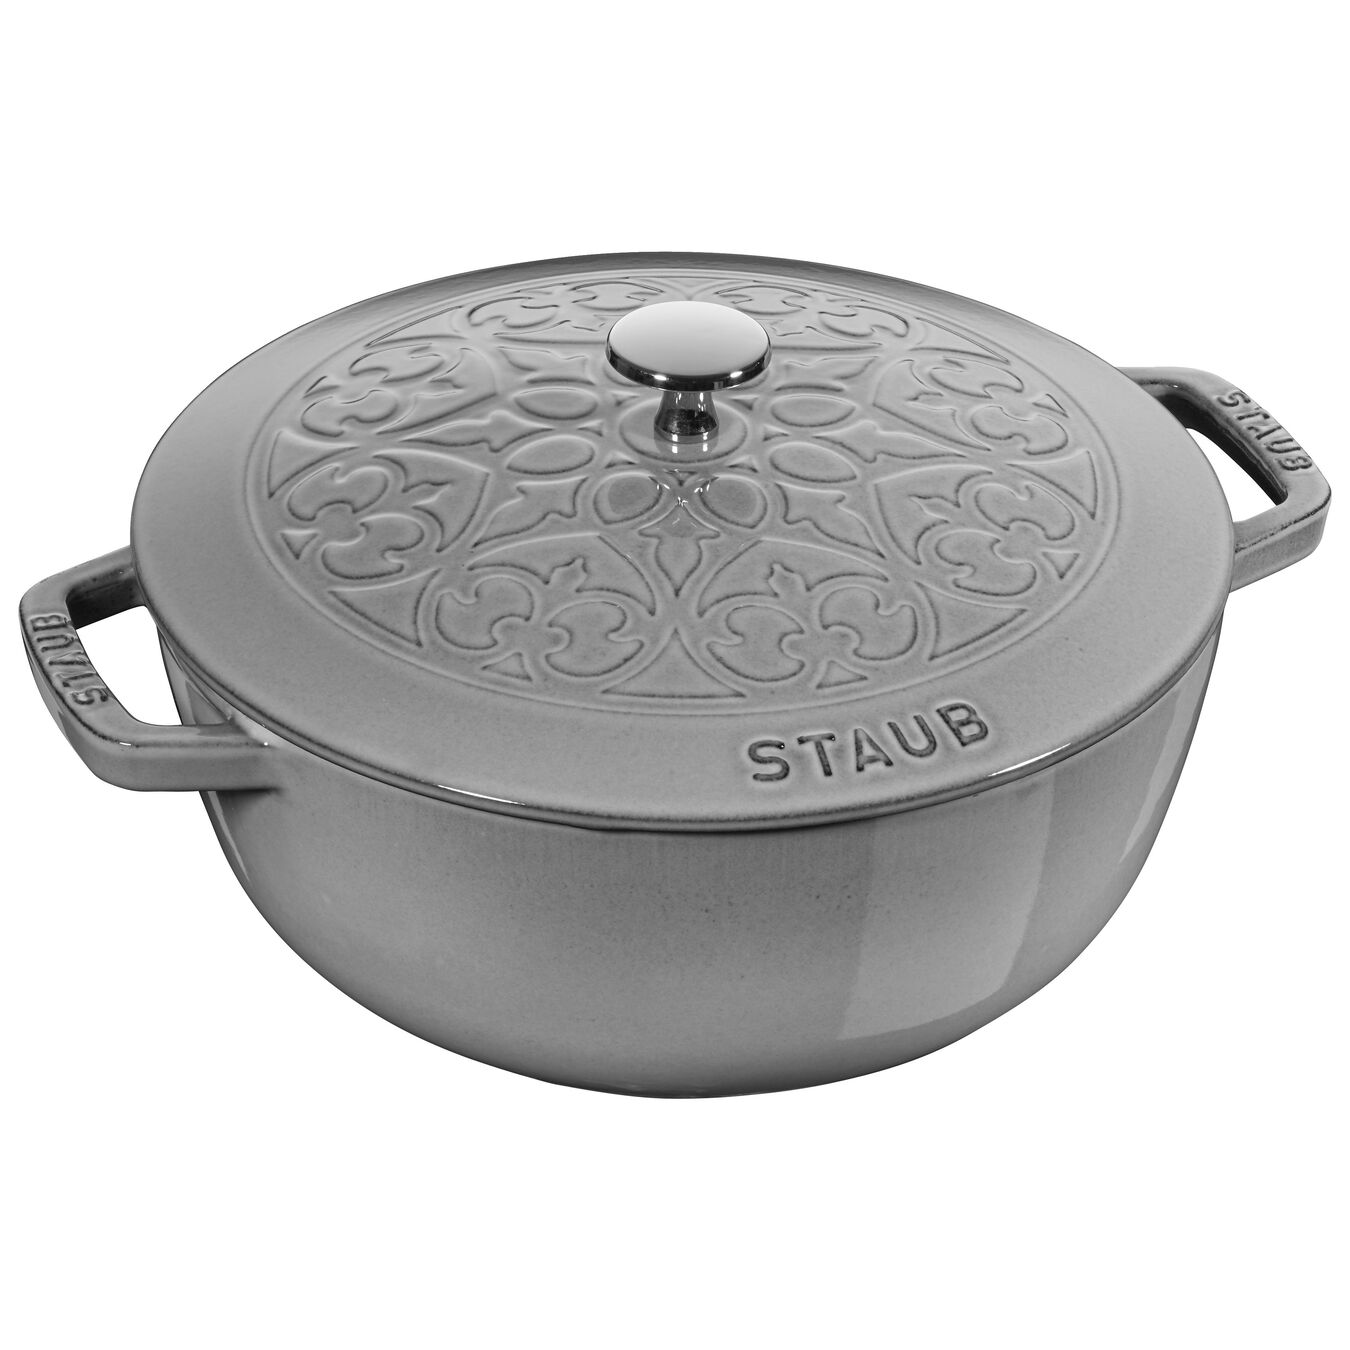 5 l Cast iron round French oven, Graphite-Grey,,large 1